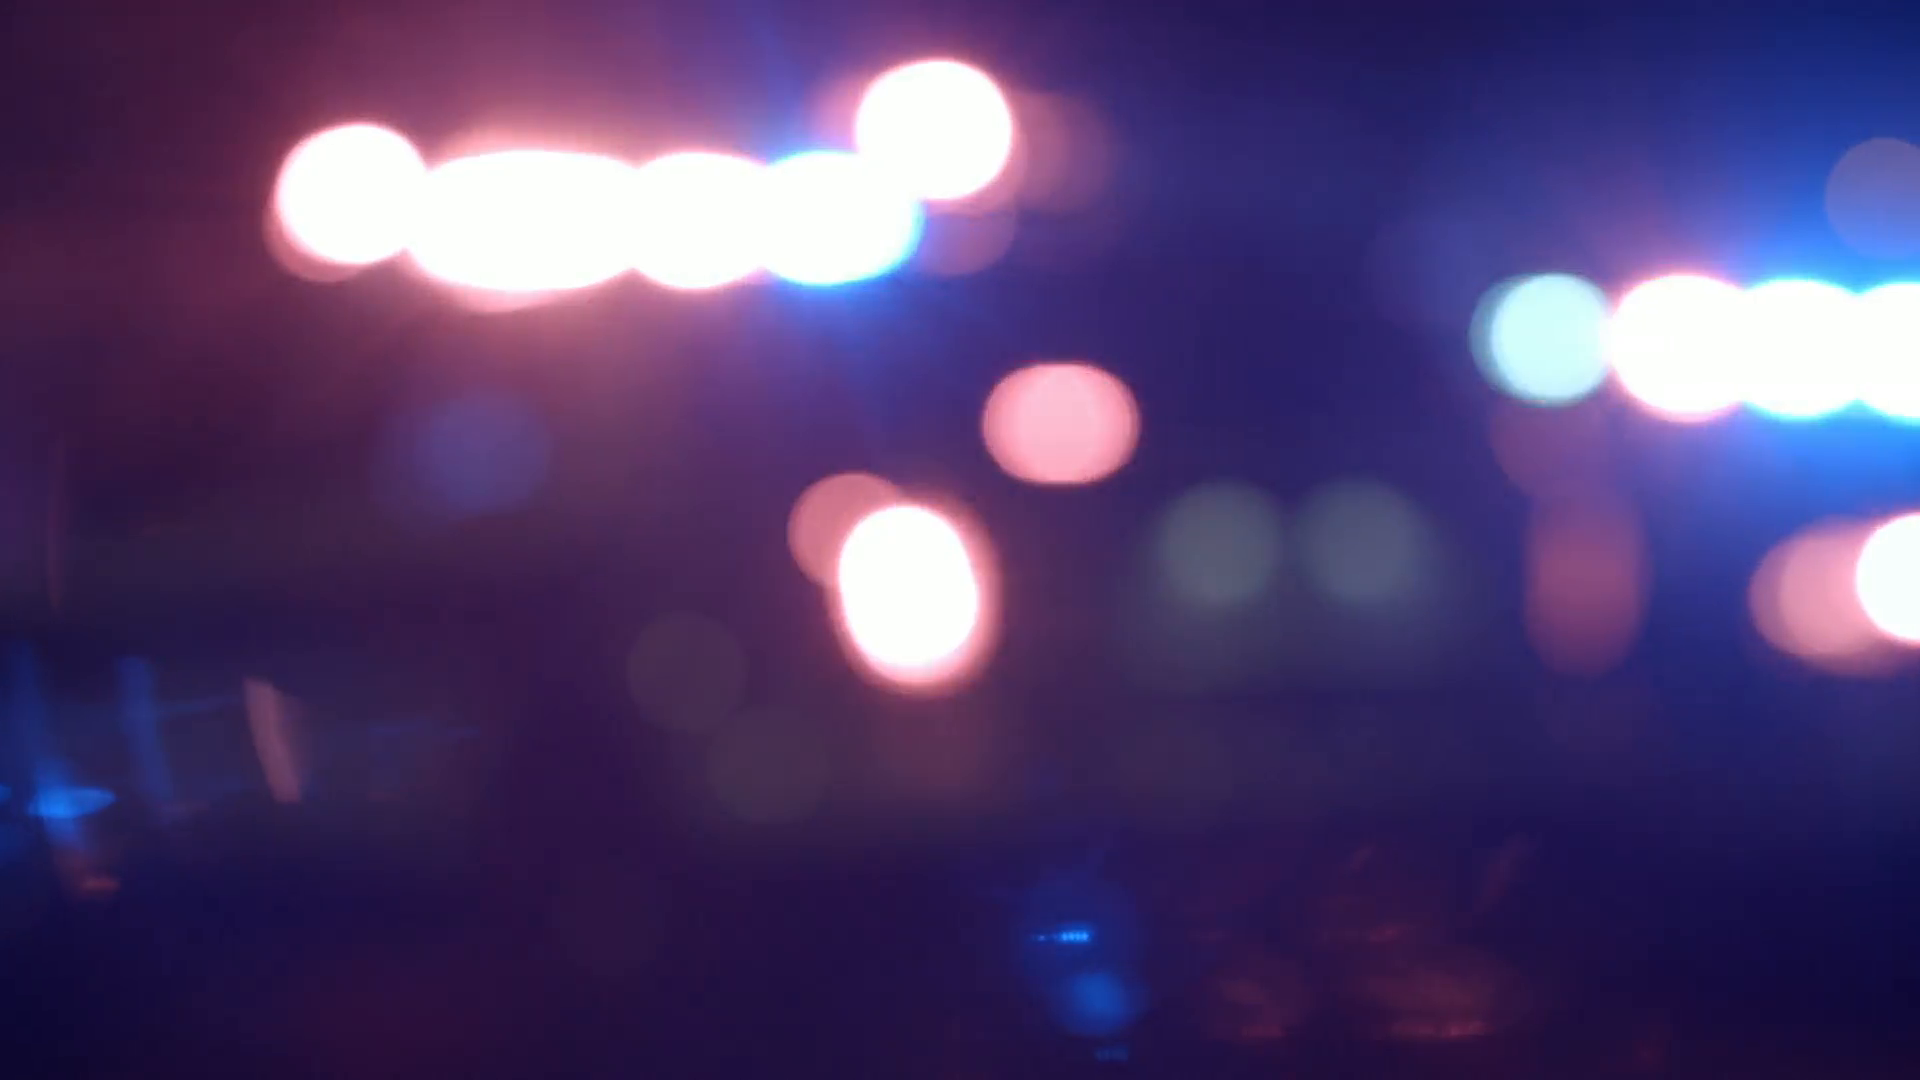 Ambulance Cops and Firetrucks Blurry Lights Panning Background at 1920x1080